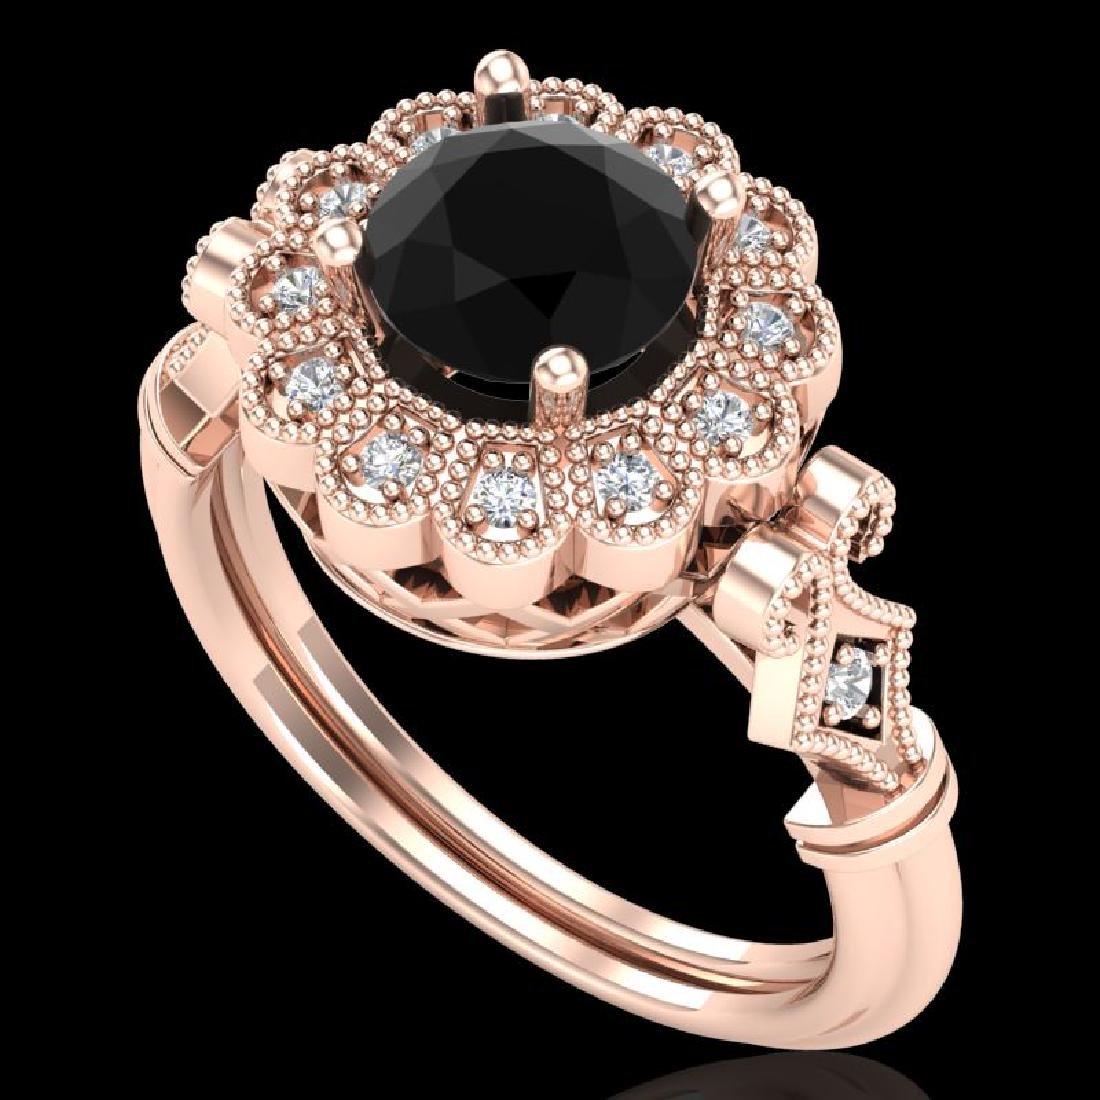 1.2 CTW Fancy Black Diamond Solitaire Engagement Art